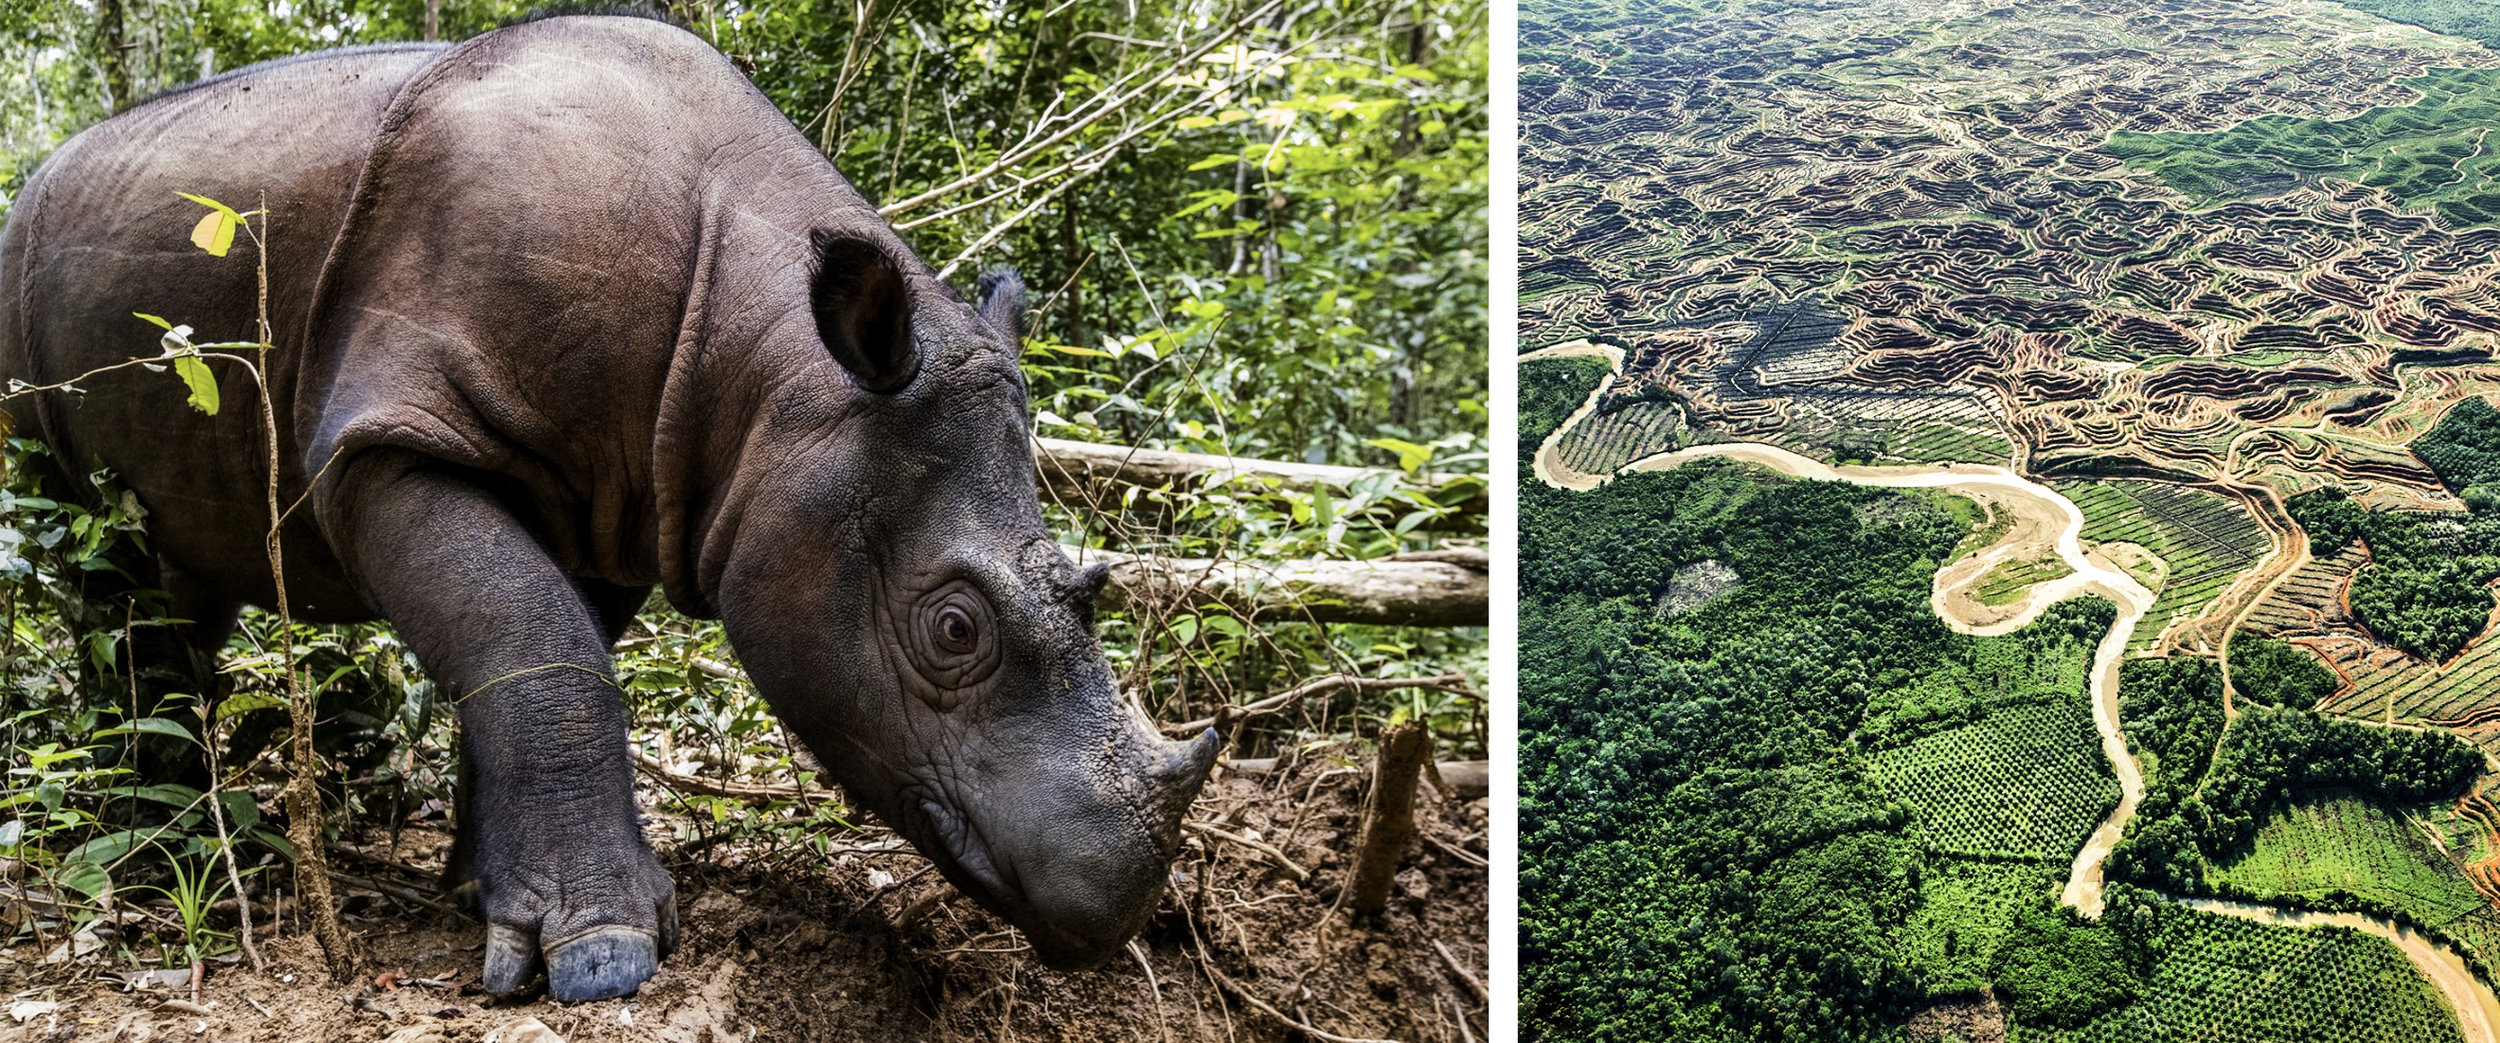 Photo: Paul Hilton. A critically endangered Sumatran rhino roams the Leuser Ecosystem, only time will tell if we manage to save this equatorial forest from conflict palm oil.